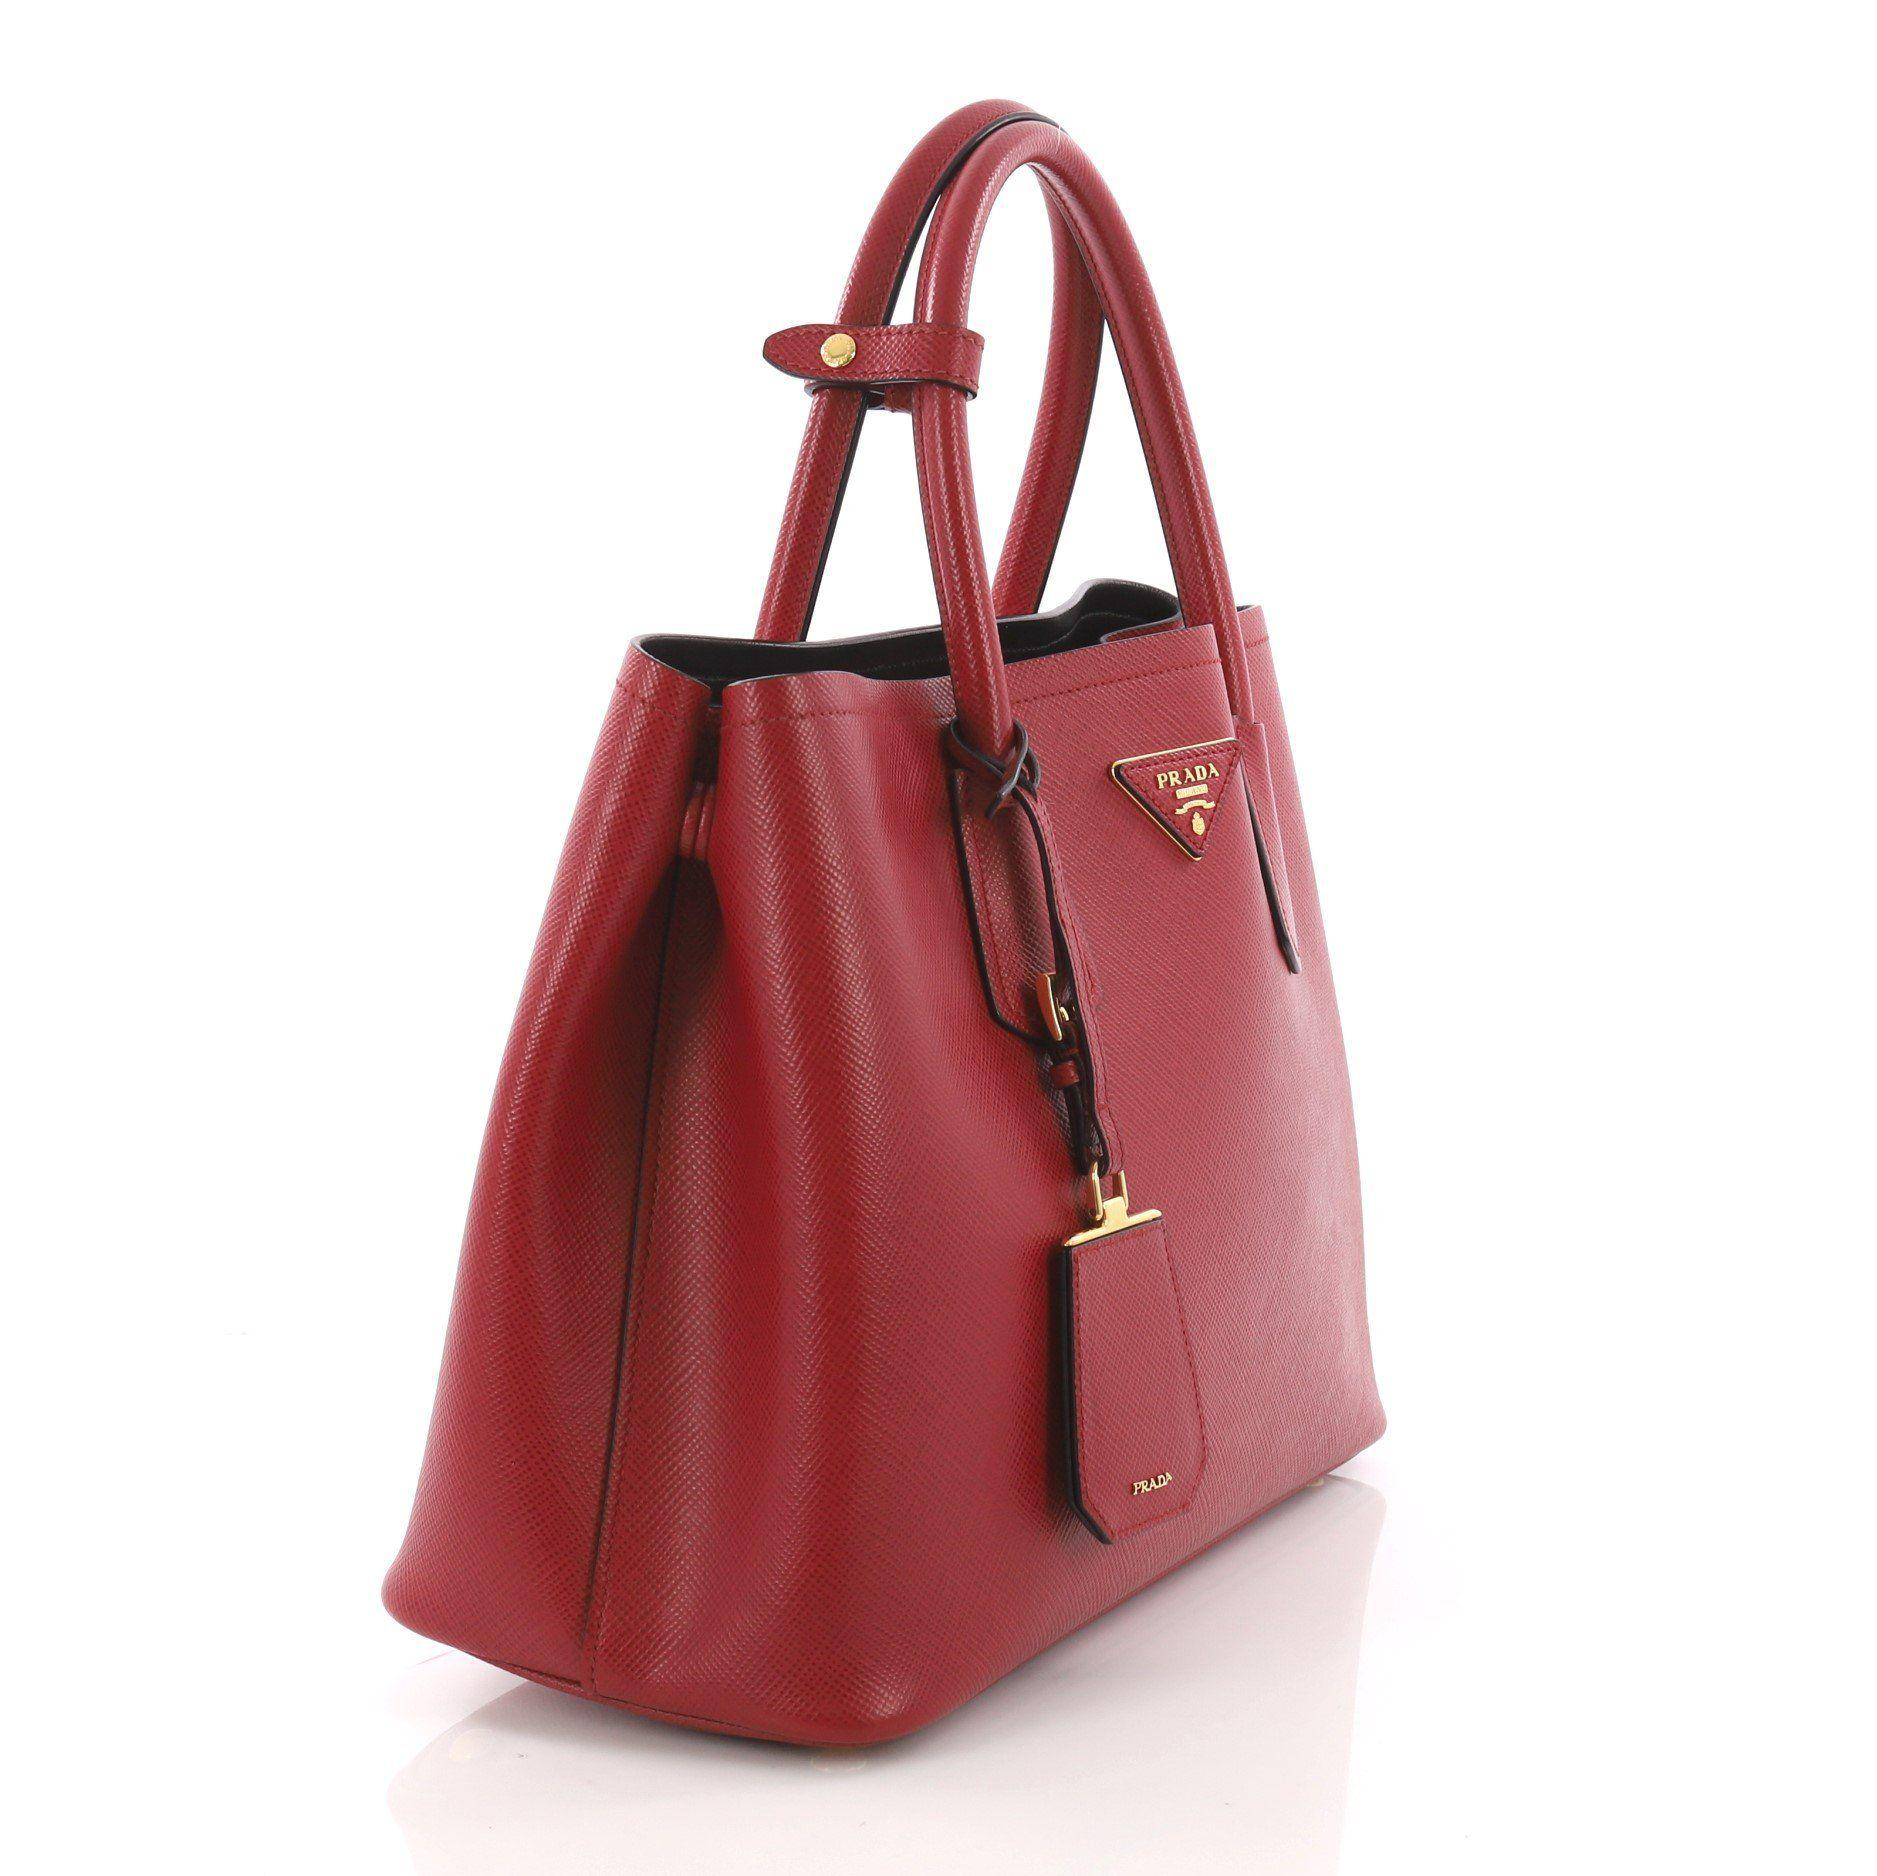 24efe66f3f53 Prada - Red Pre Owned Cuir Double Tote Saffiano Leather Small - Lyst. View  fullscreen